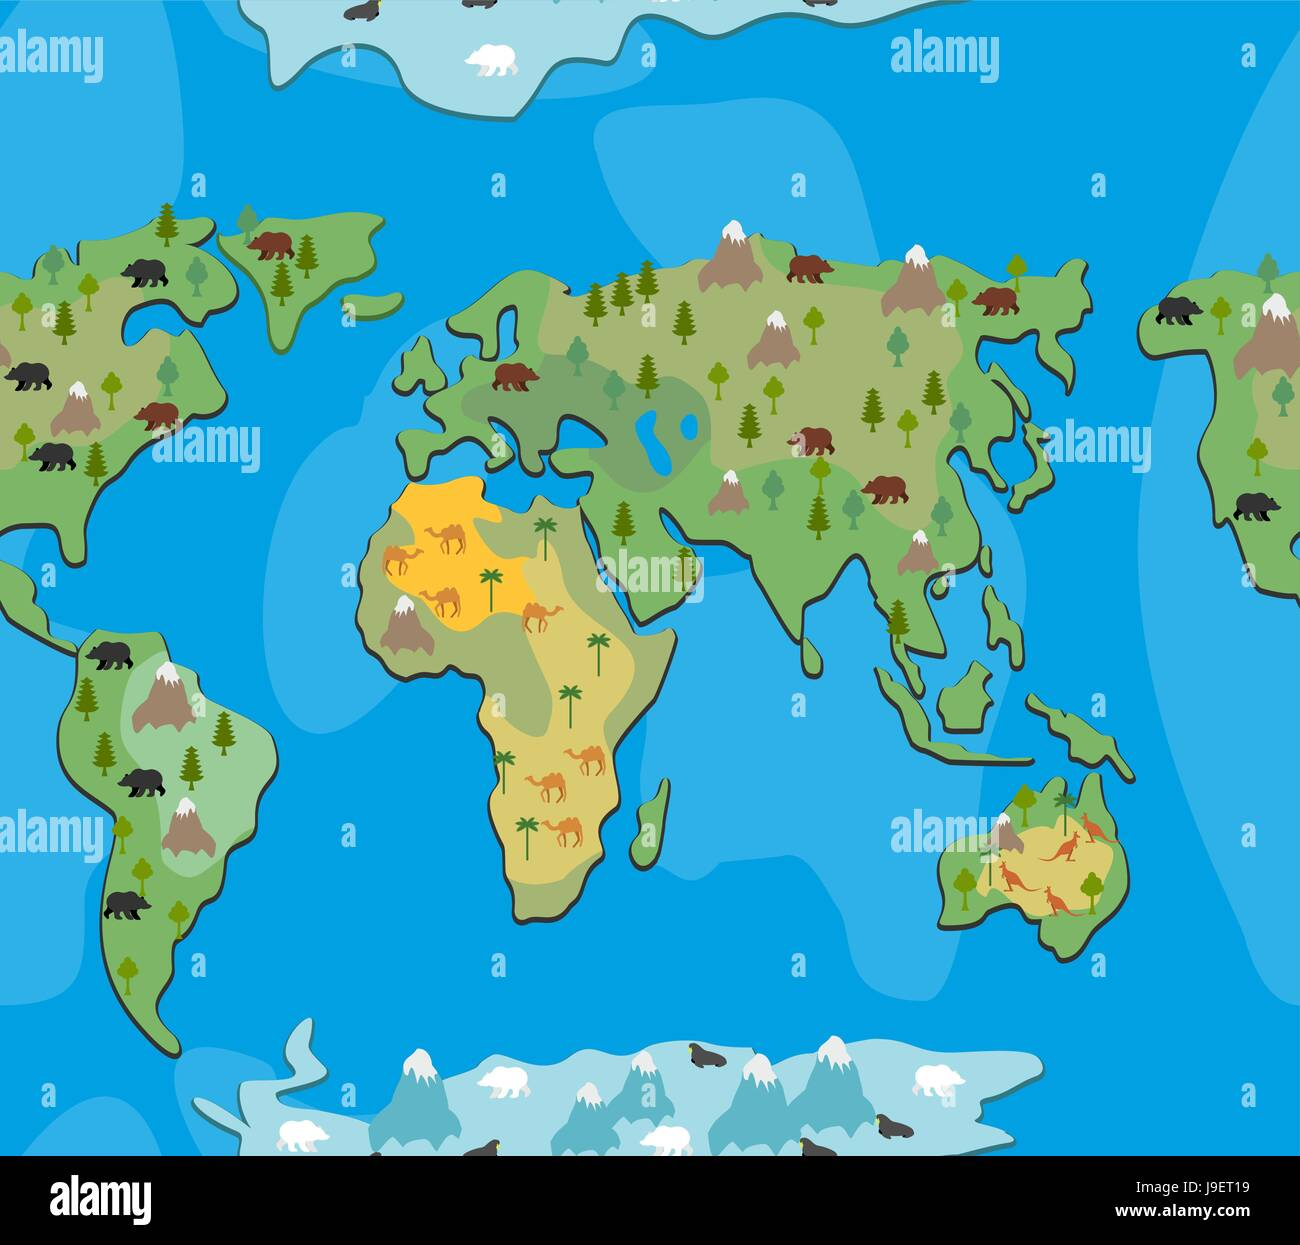 World map with animals and trees seamless pattern background of world map with animals and trees seamless pattern background of geographical atlas of flora and fauna endless ornament for baby cloth of contin gumiabroncs